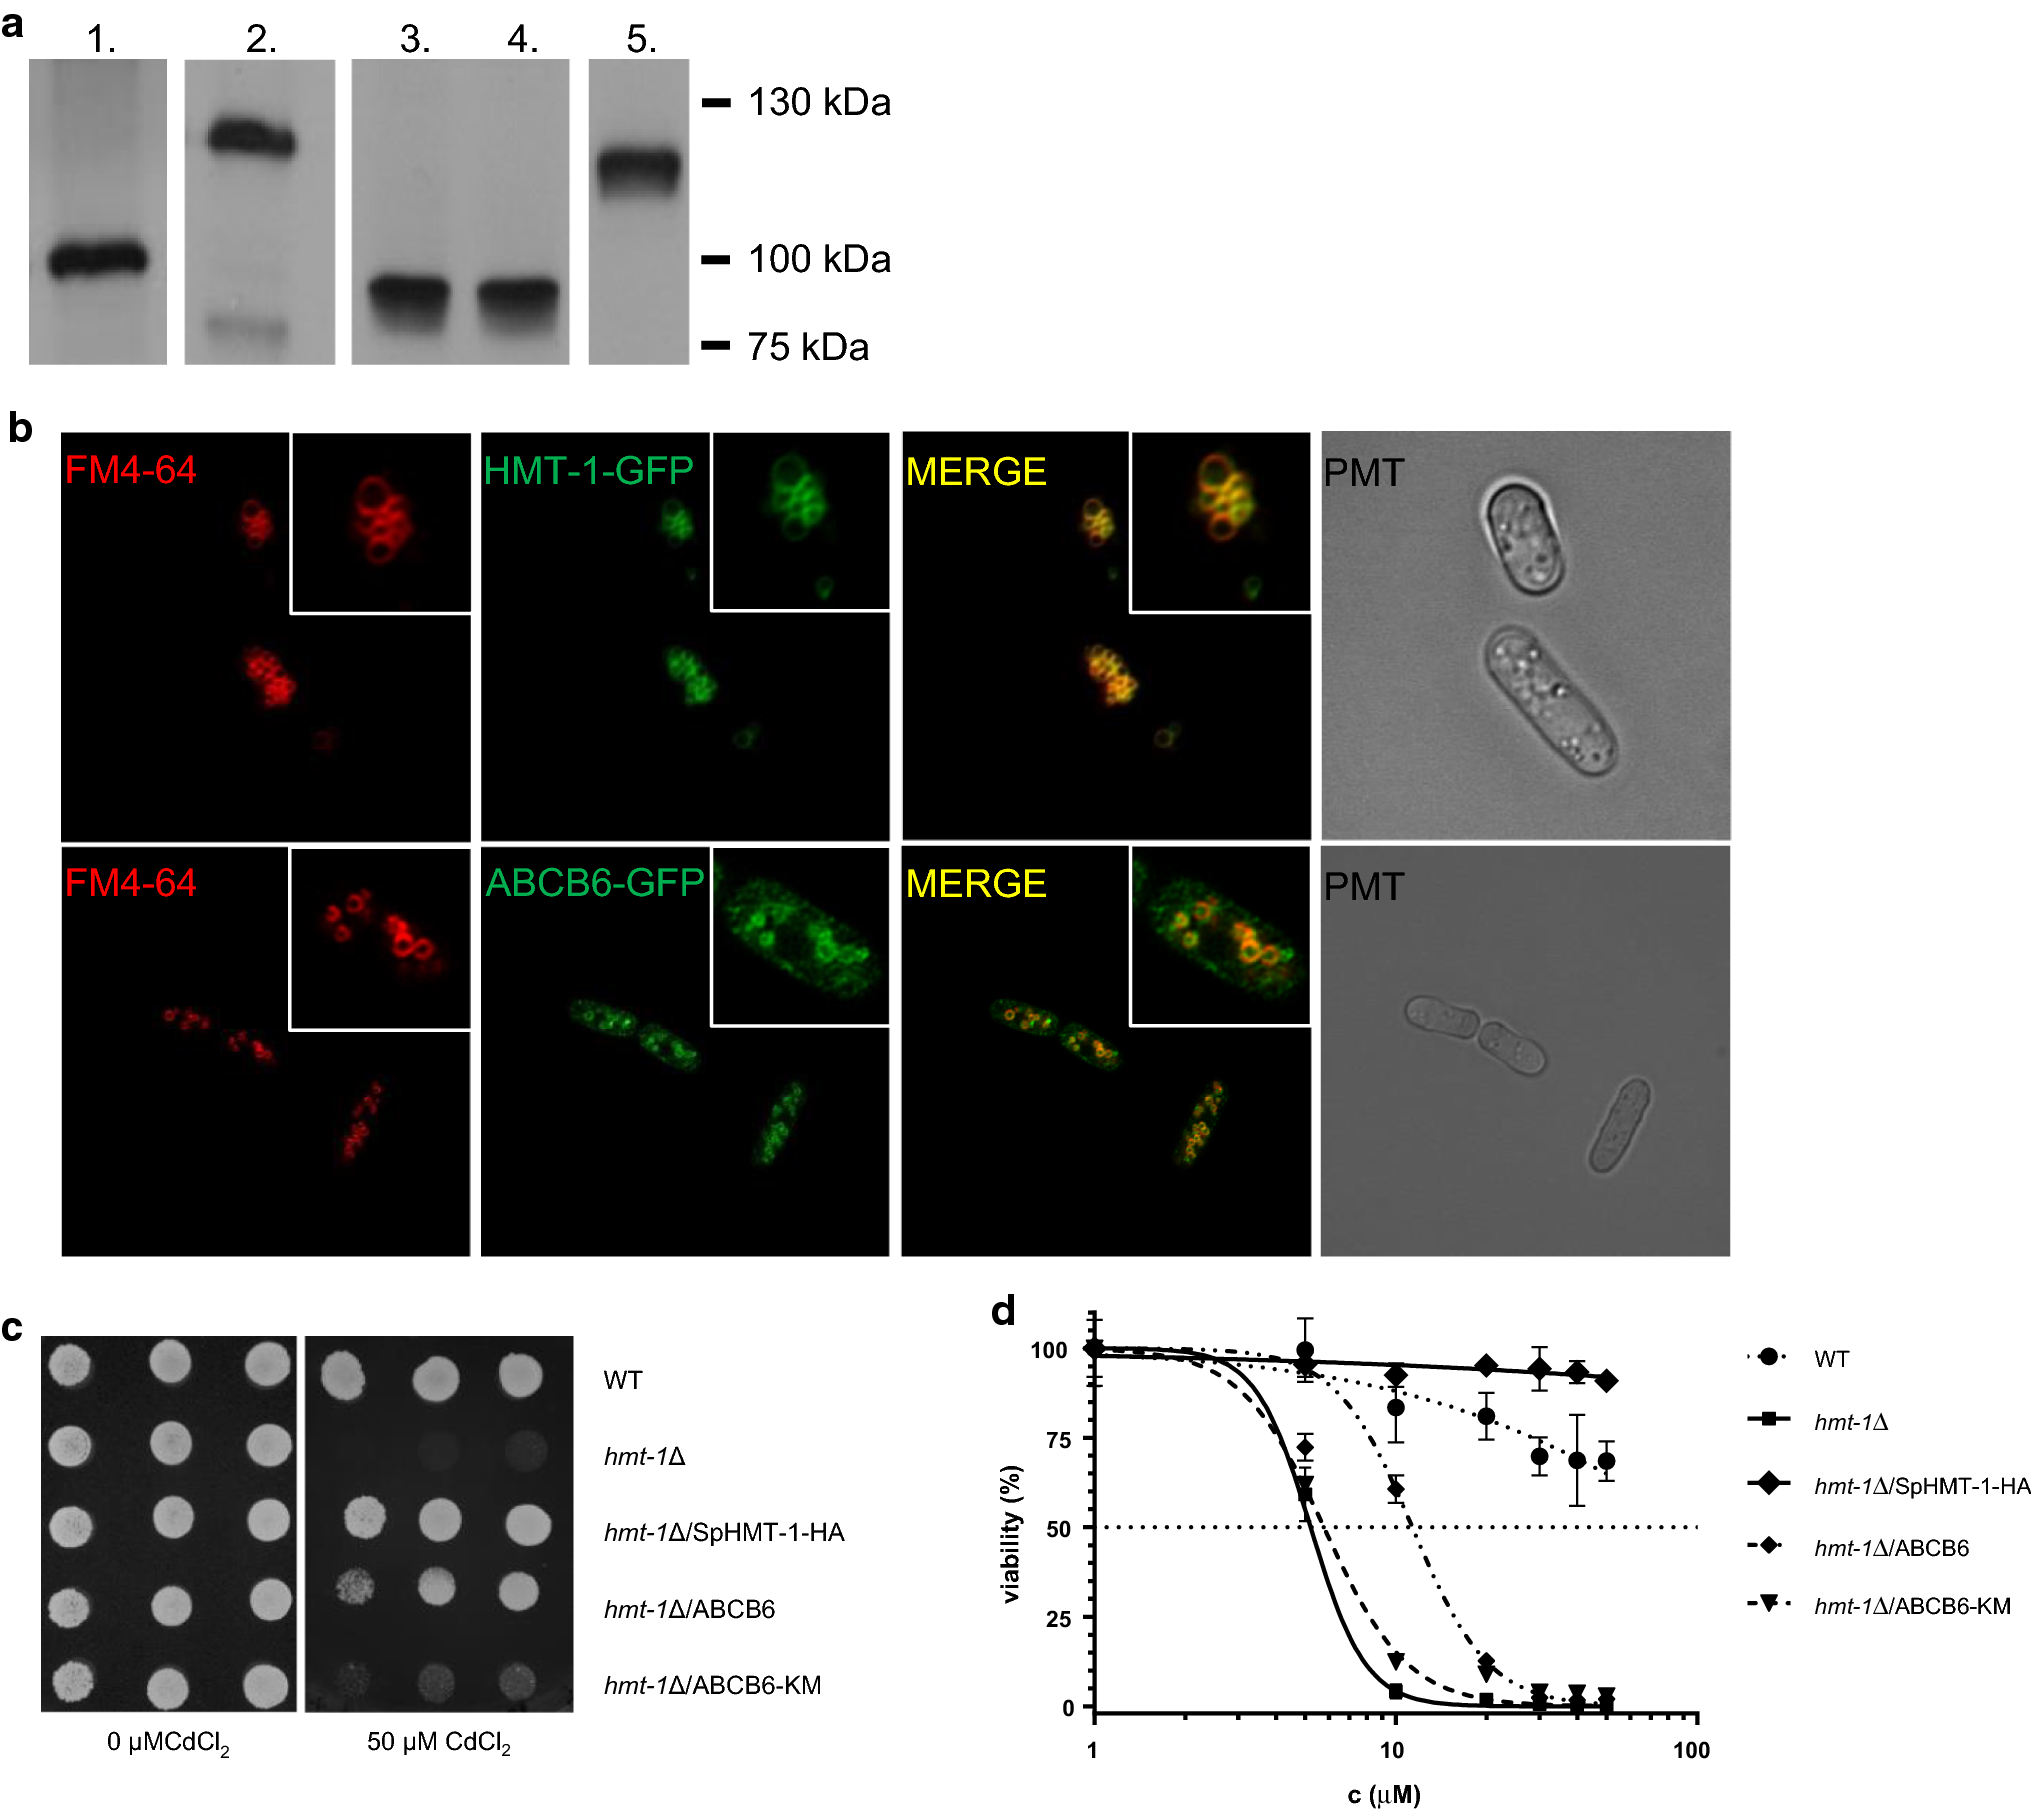 The human ABCB6 protein is the functional homologue of HMT-1